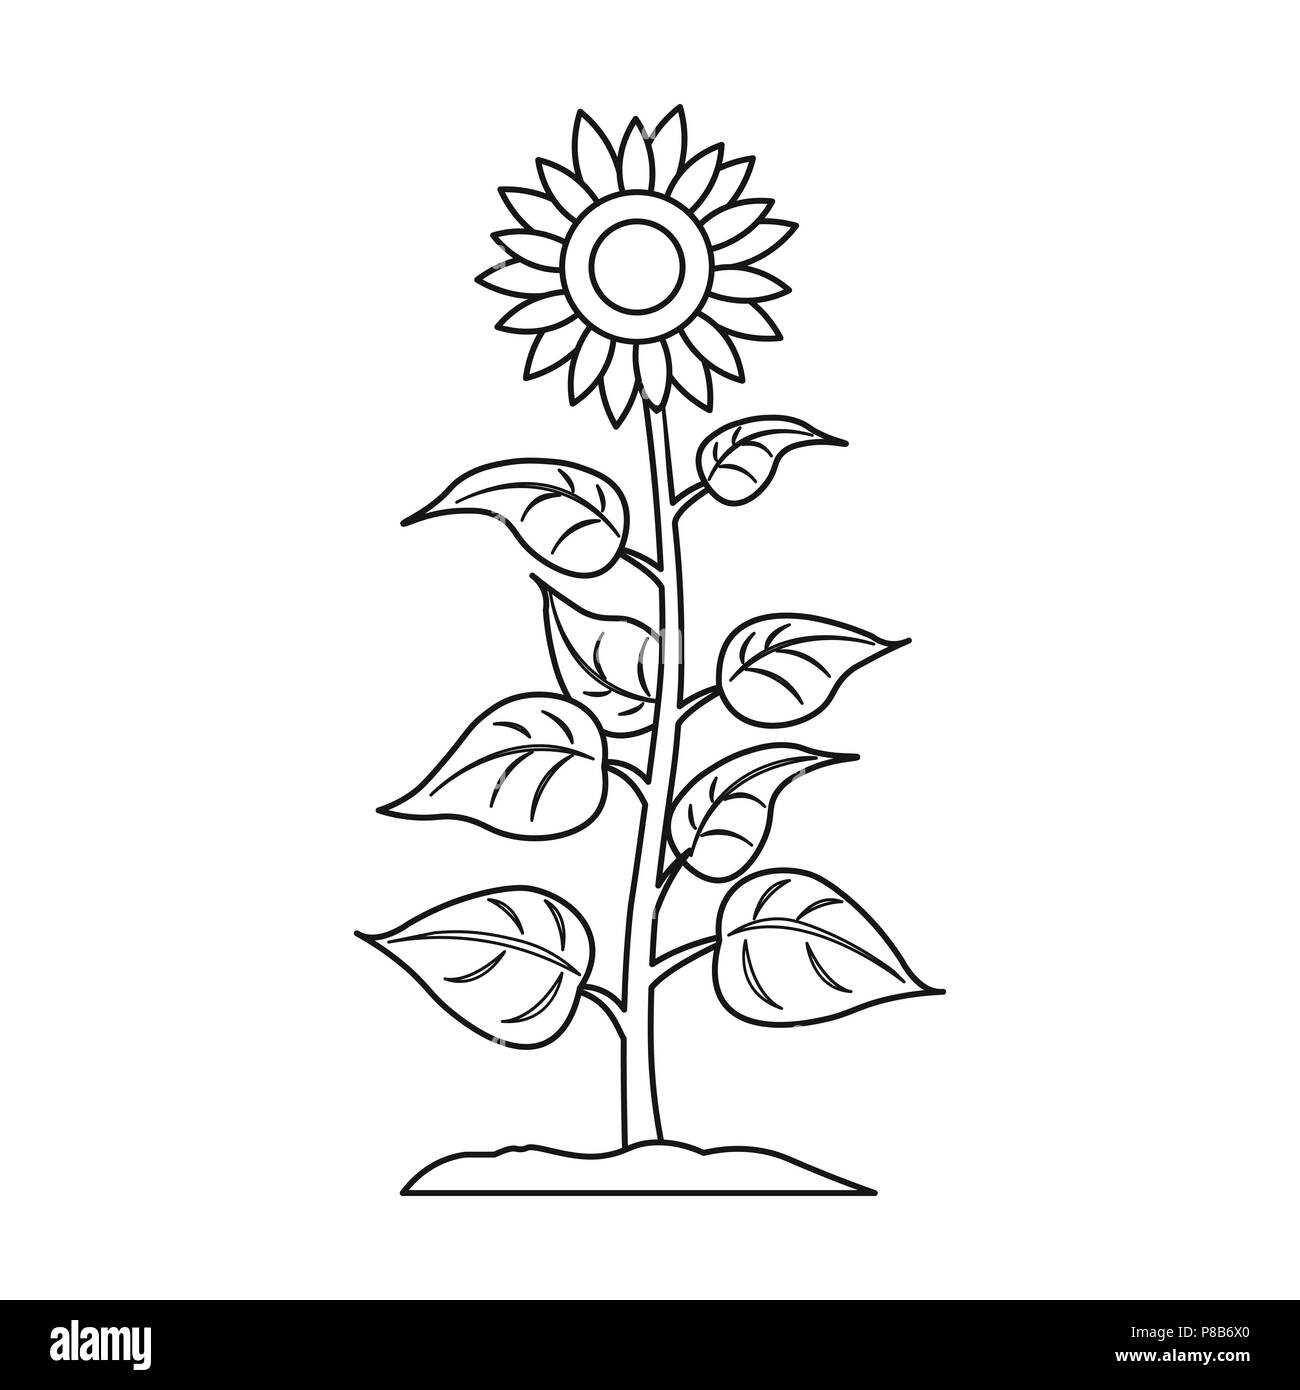 Sunflower Icon In Outline Style Isolated On White Background Plant